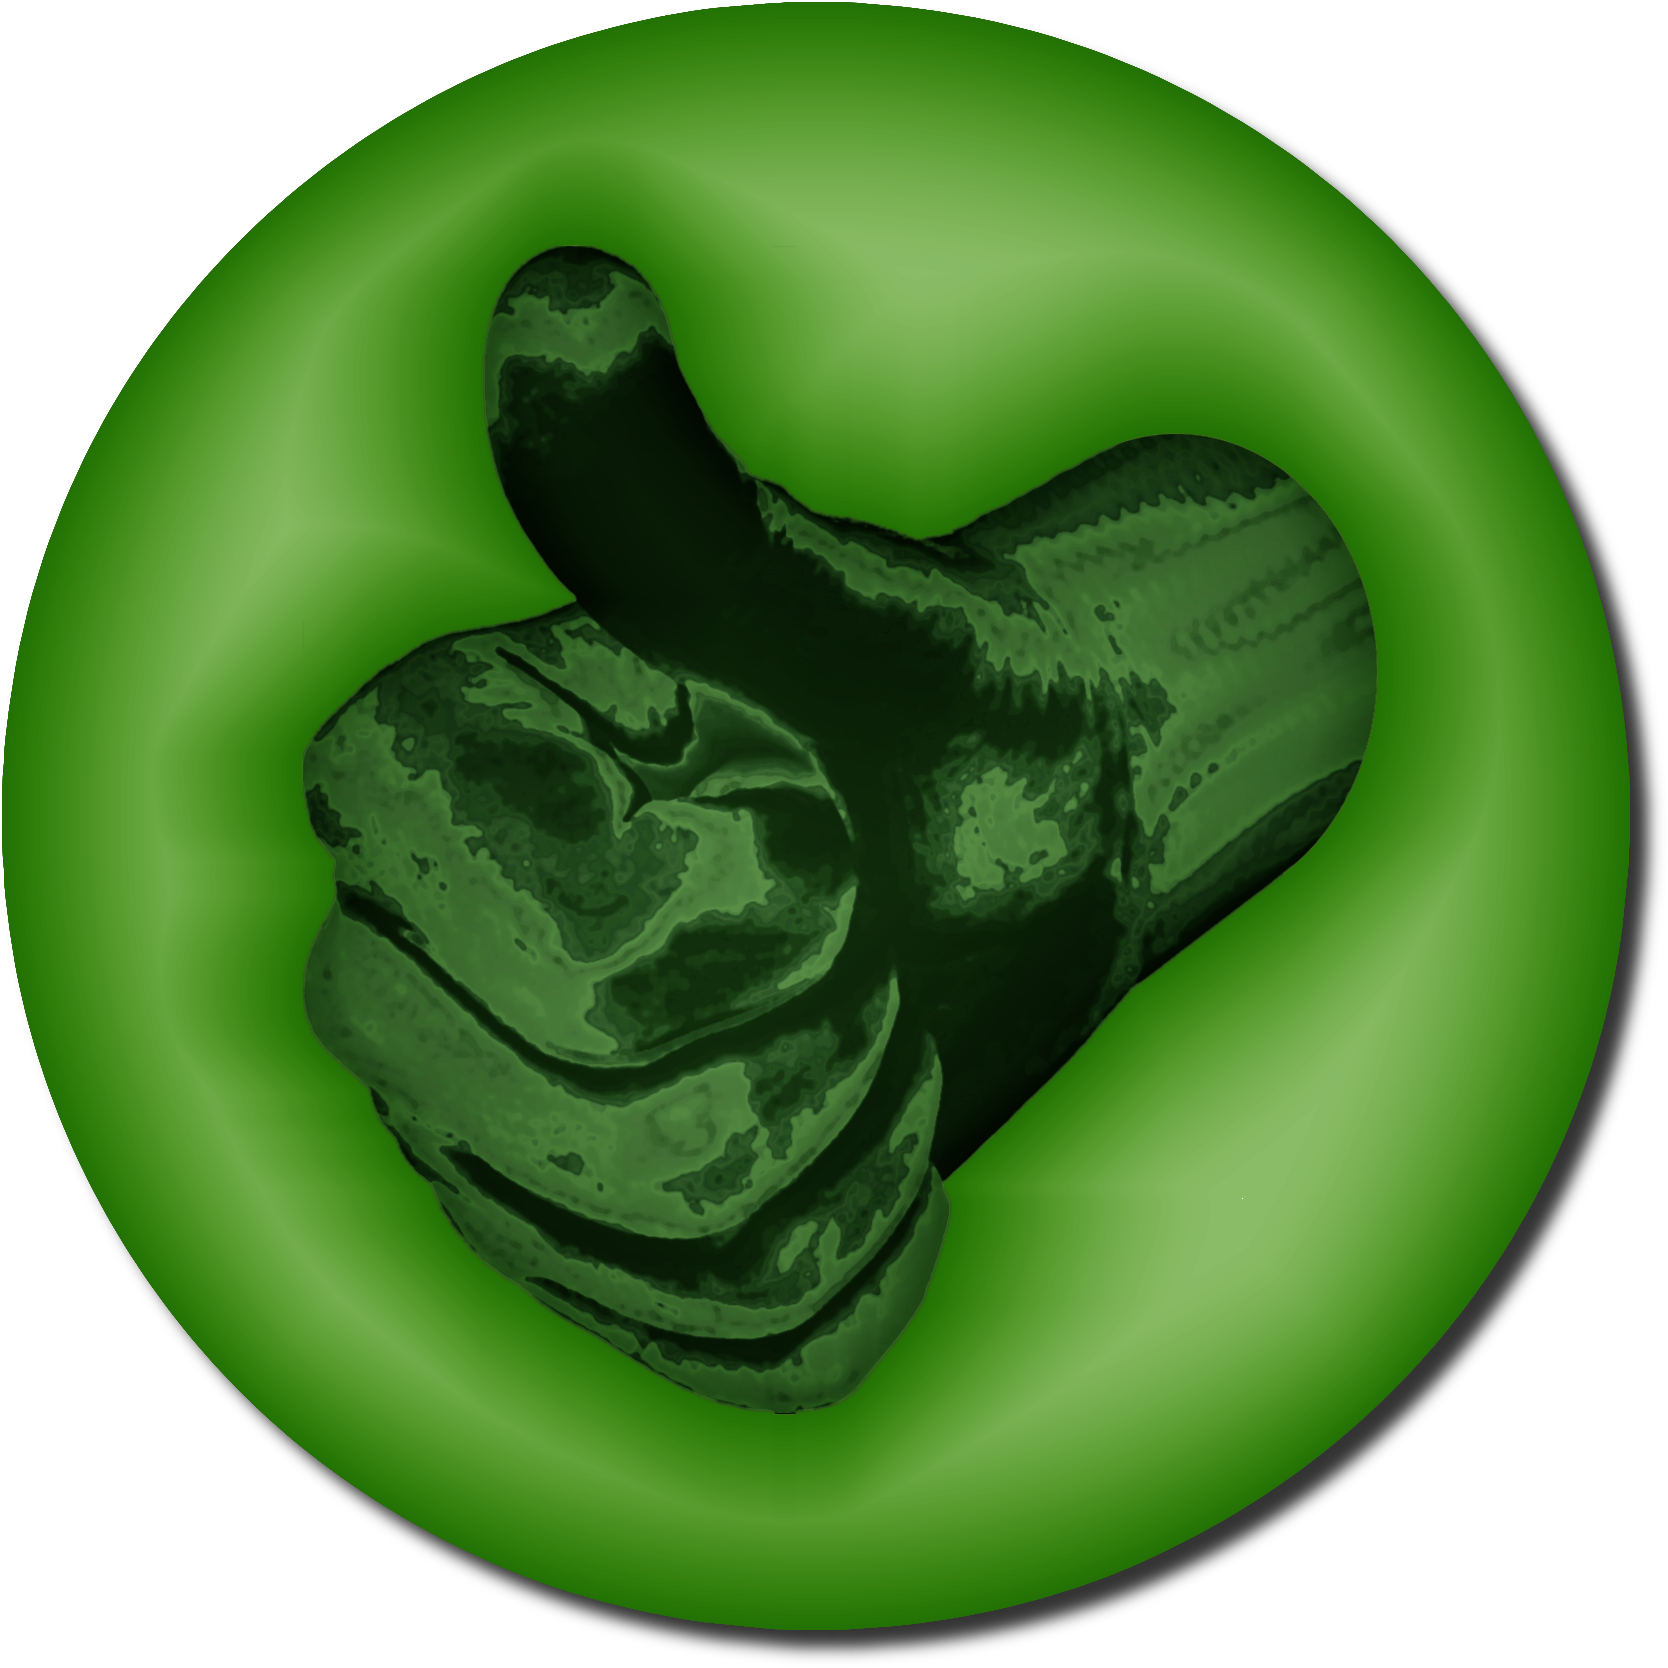 File:Thumb up2.png - Wikimedia Commons